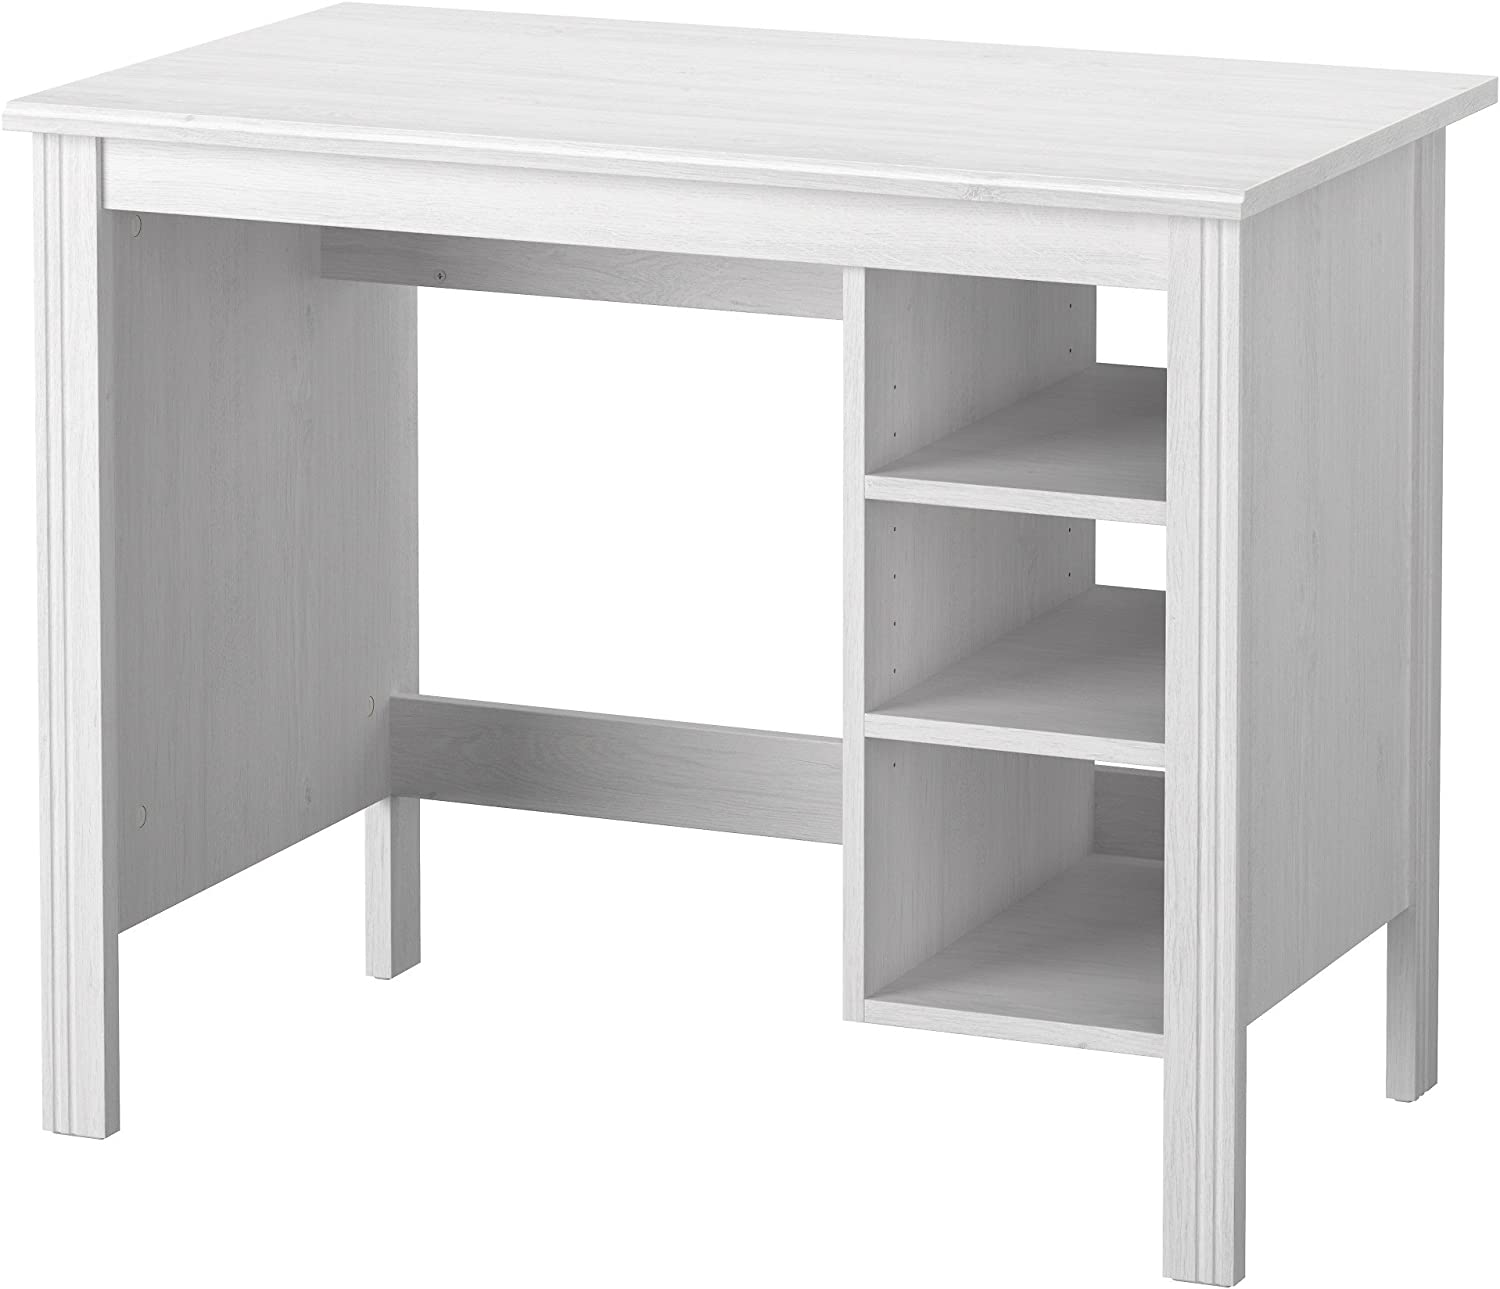 Zigzag Trading Ltd IKEA BRUSALI - Escritorio Blanco: Amazon.es: Hogar